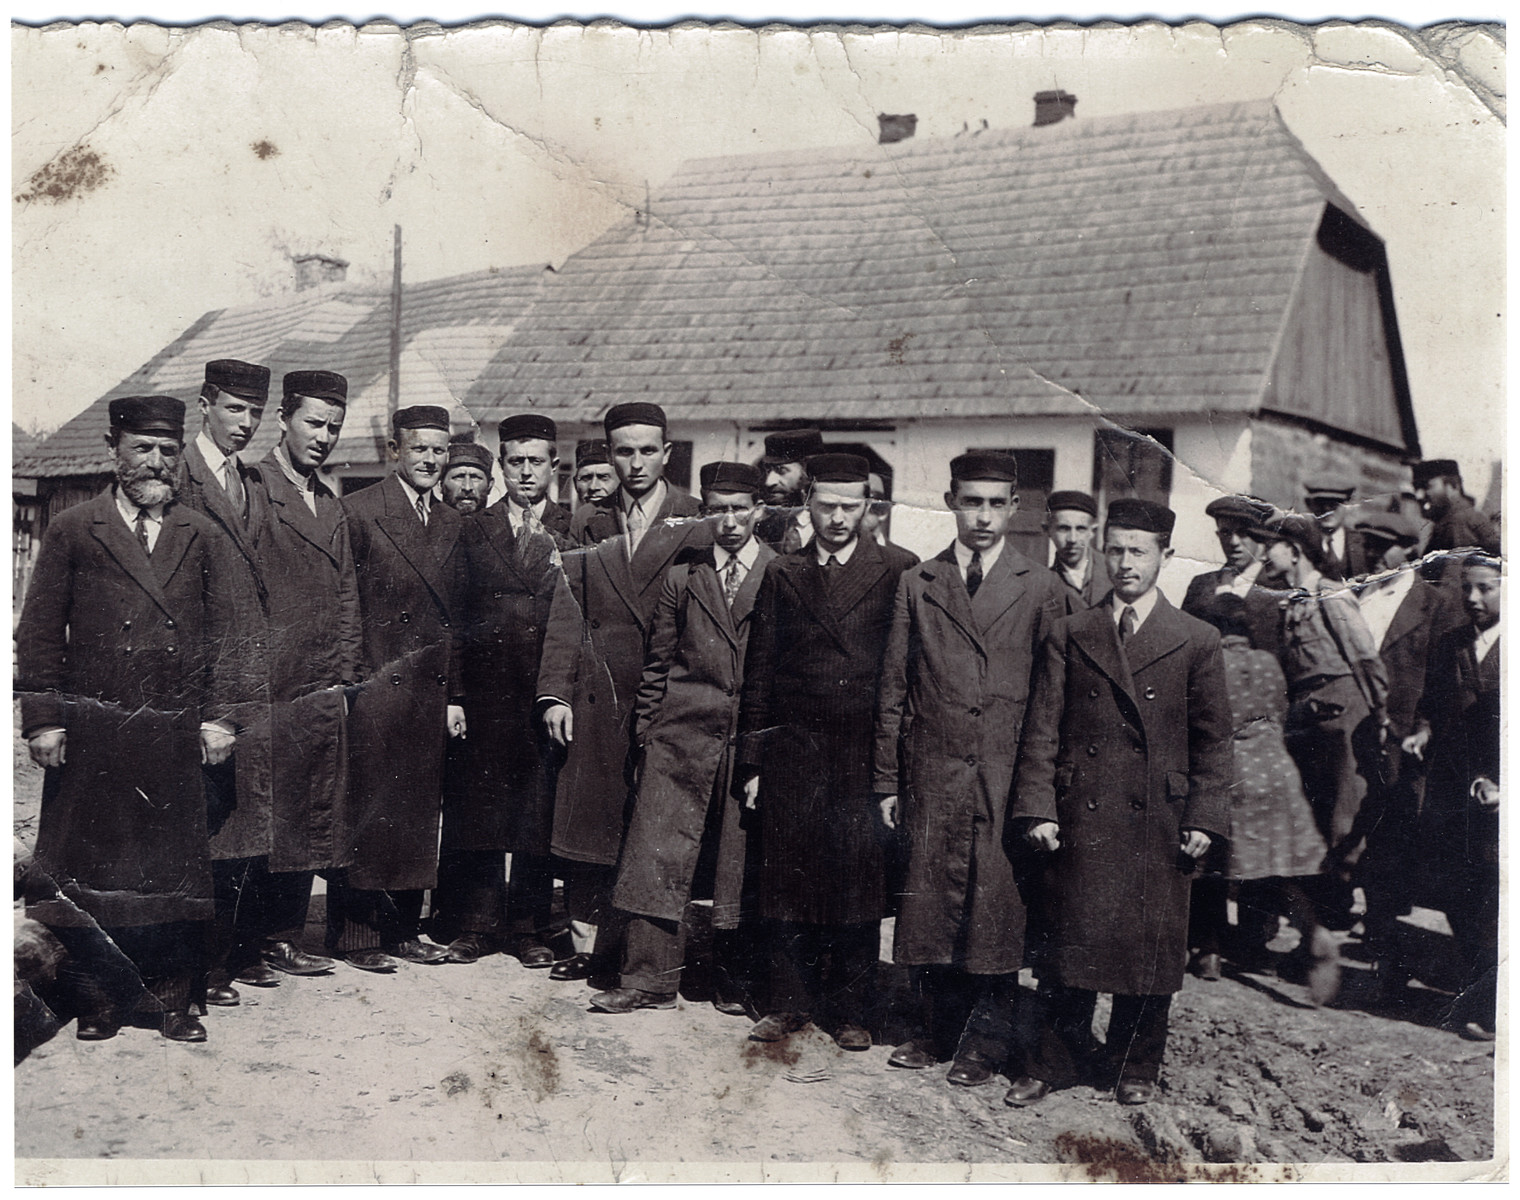 Group photograph of Chassidic Jews in the town of Wachok, Poland.